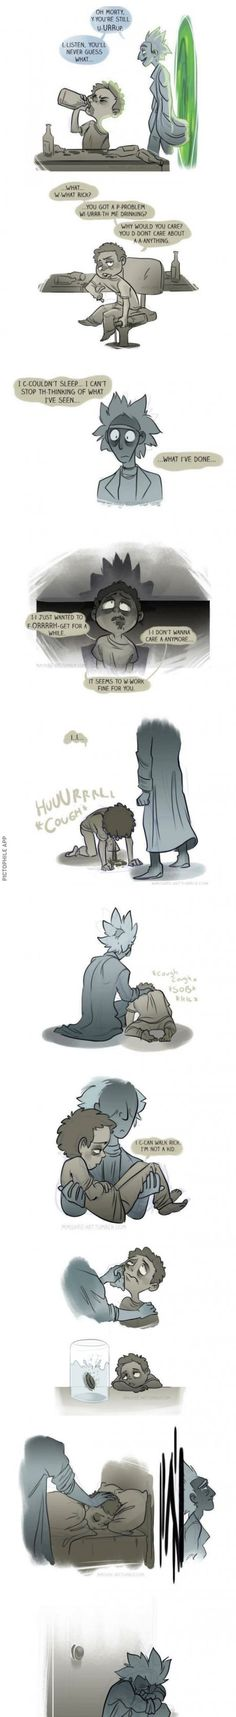 The feels morty *BURP!.. the feels